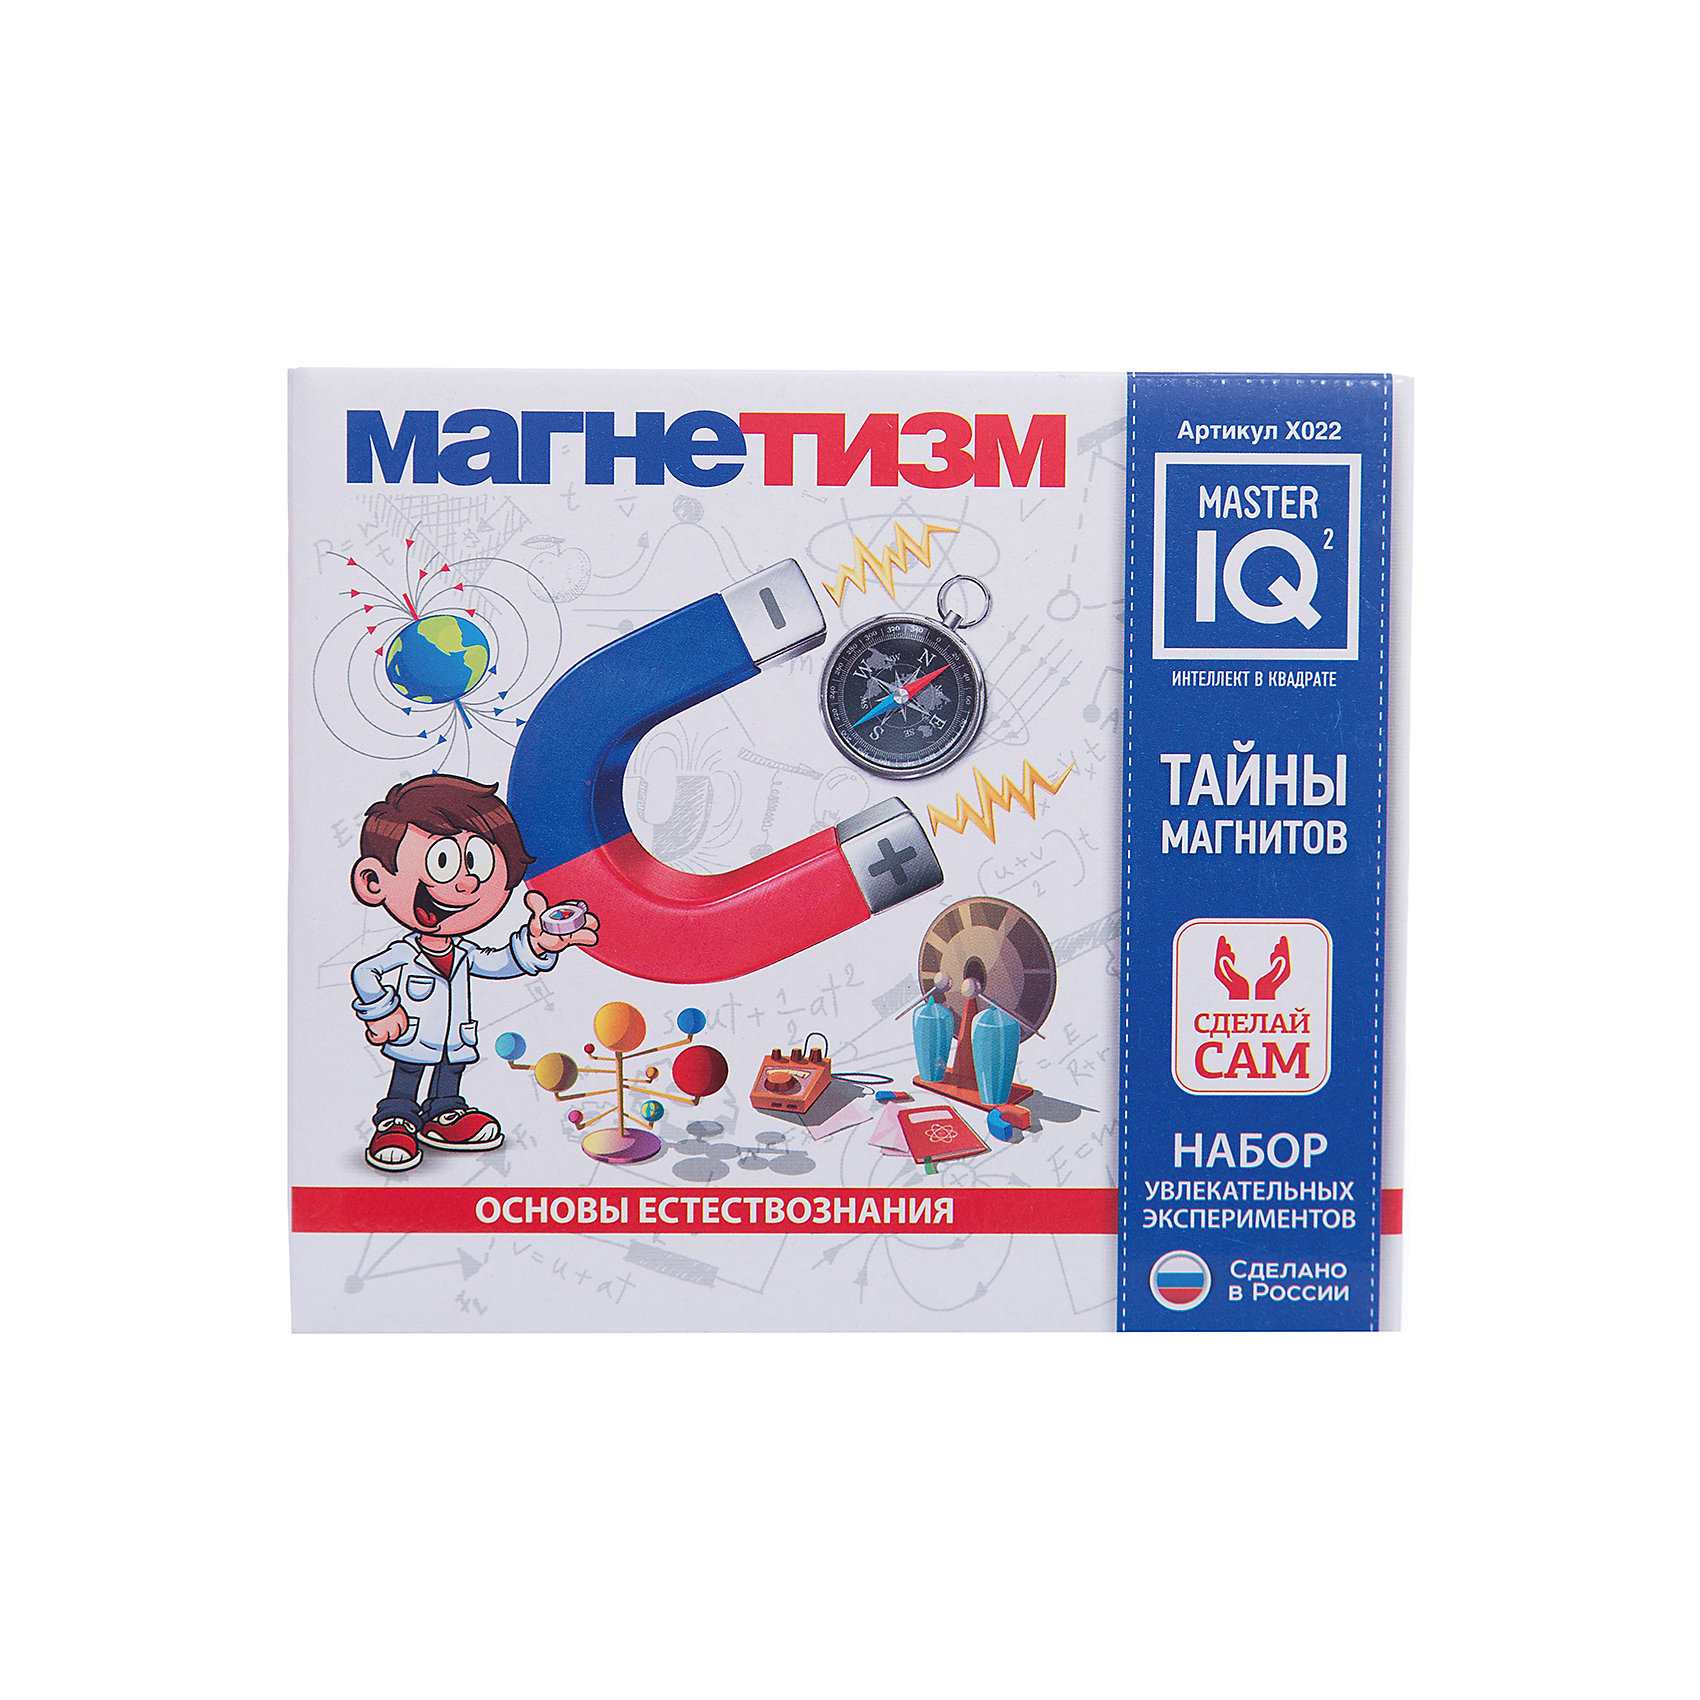 Master IQ2 Магнетизм cotton d market leader intermediate coursebook and dvd rom pack 3rd edition